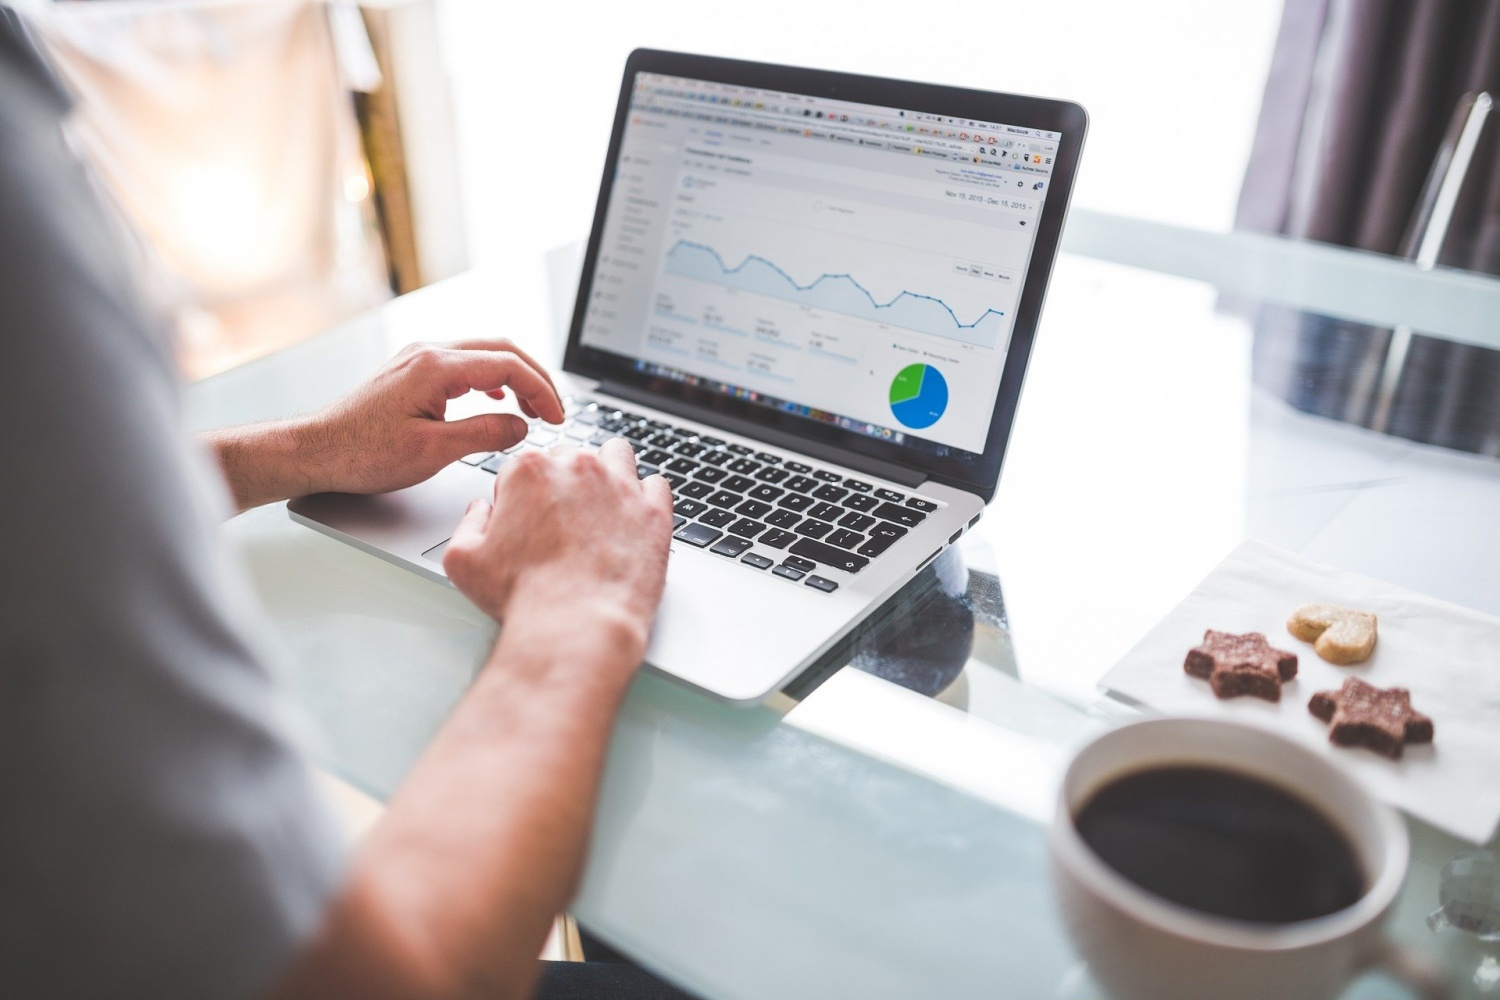 5 Things That Can Drastically Affect Your Website Performance